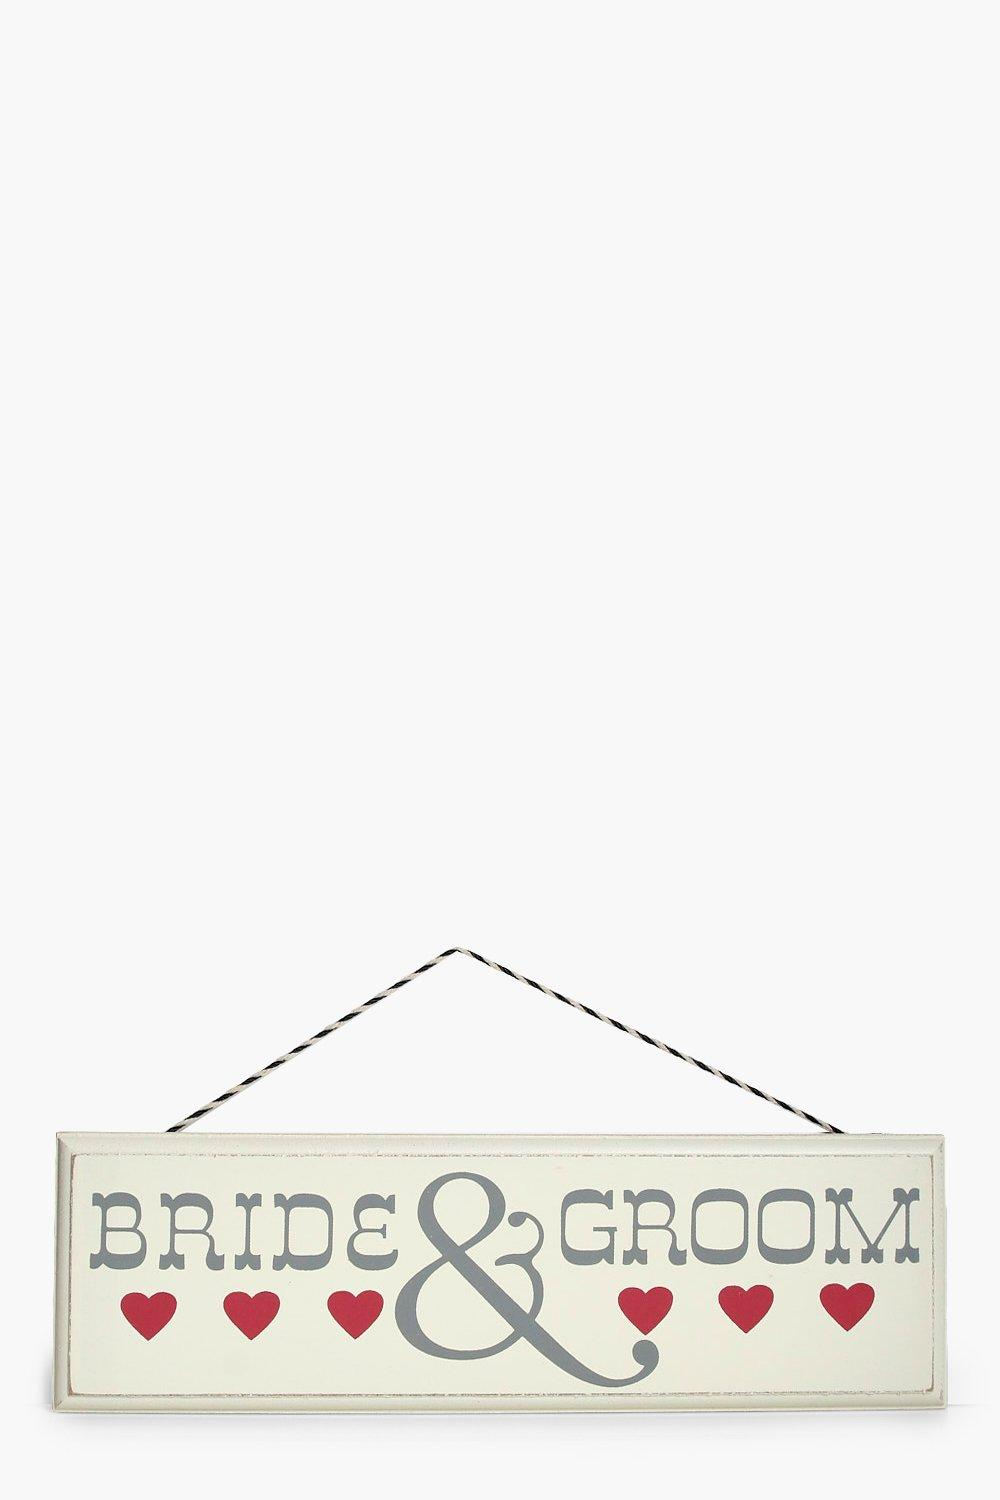 Bride & Groom Wooden Sign - cream